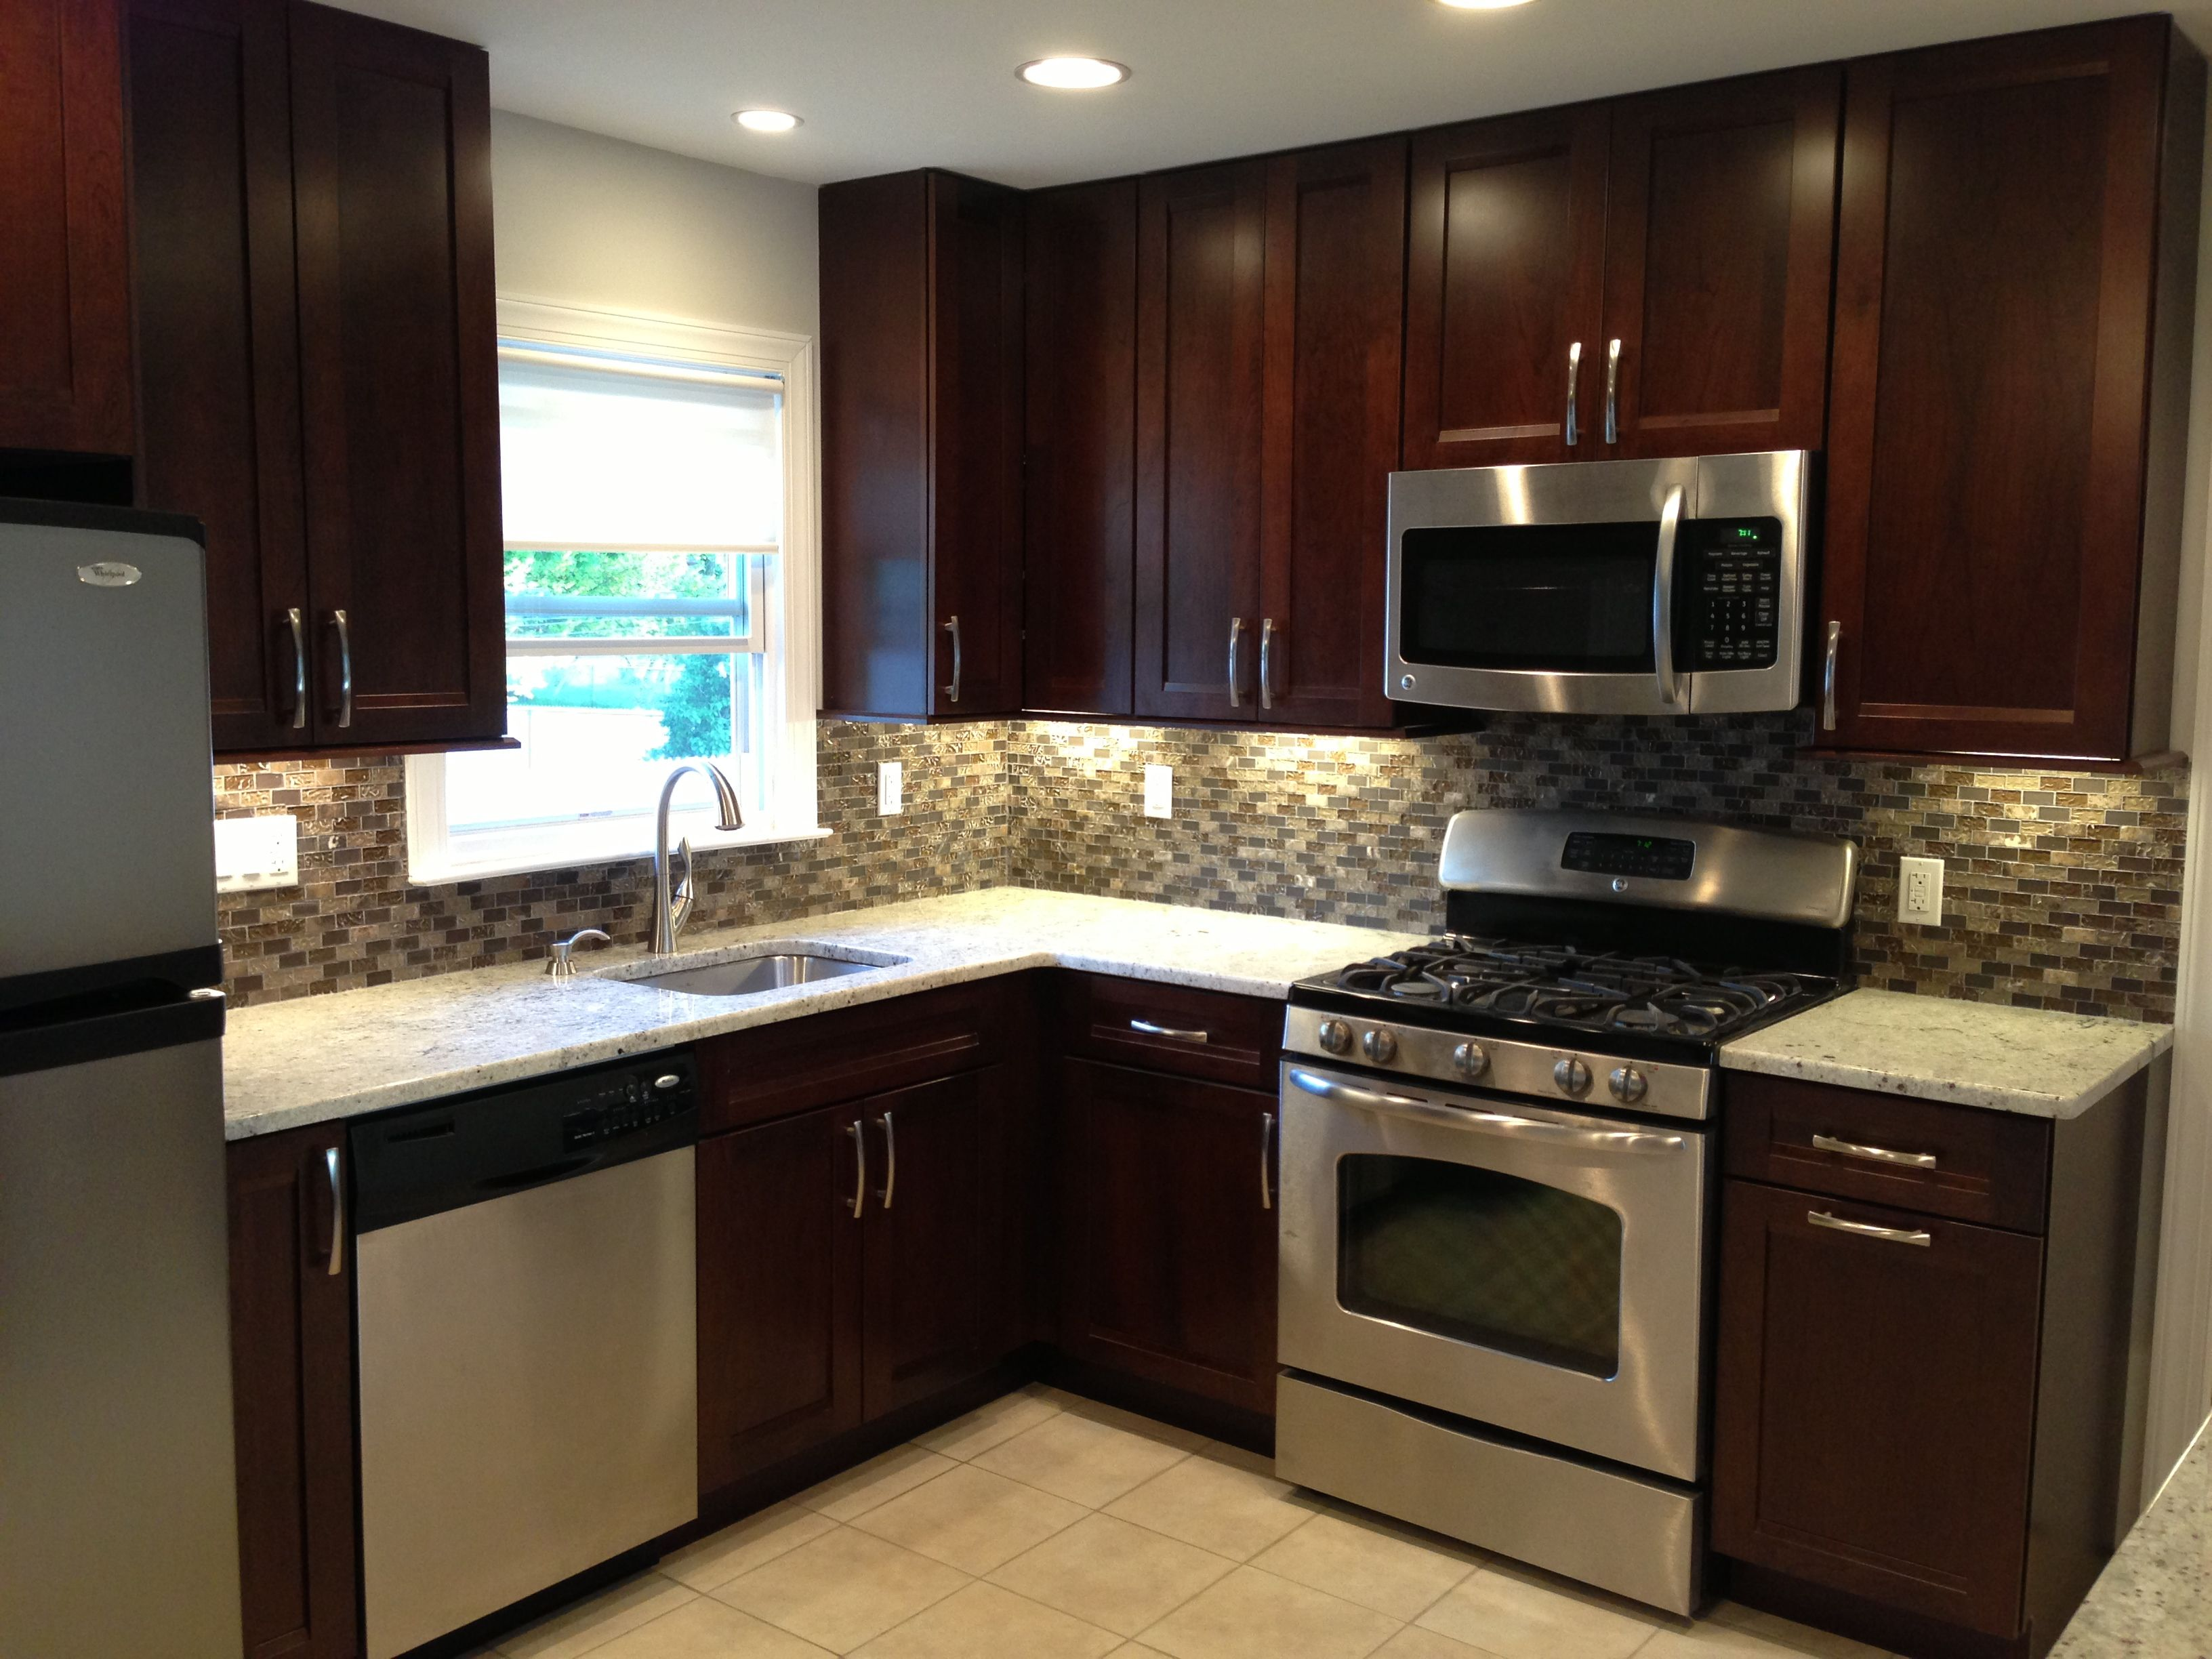 small kitchen with dark cabinets dark kitchen cabinets 16 Best Images About Kitchen On Pinterest Color Combinations Top Modern Kitchen Colors With Dark Cabinets